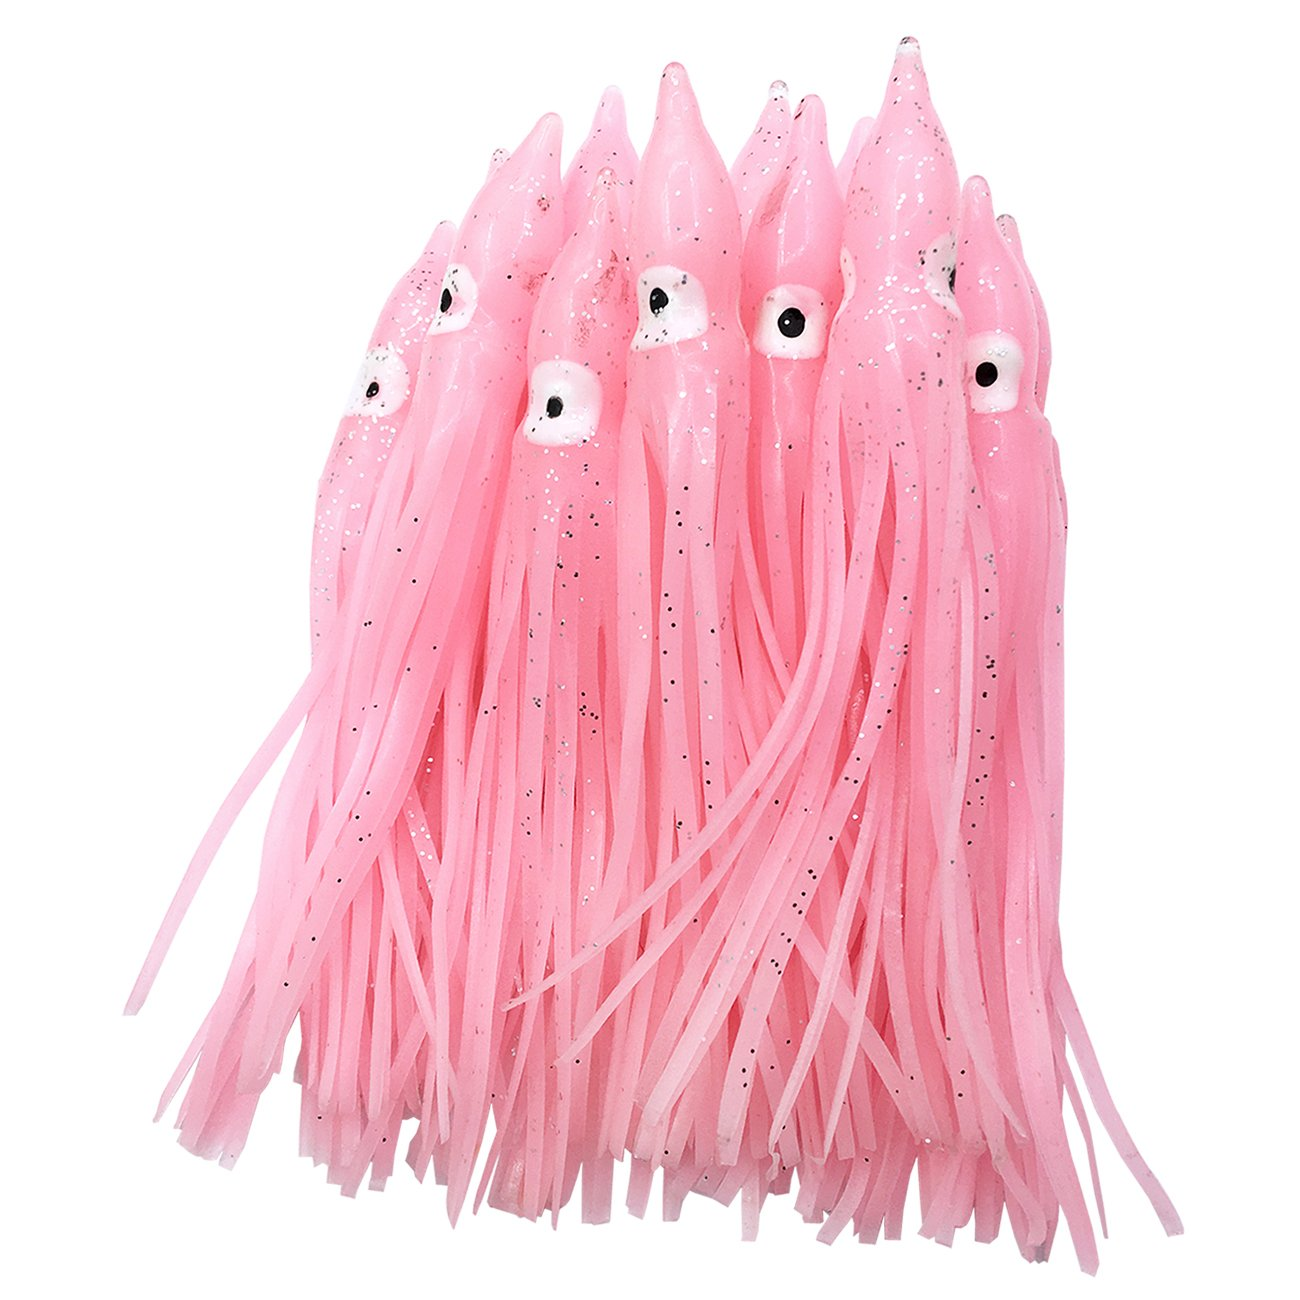 wild.life Luminous Hoochie Octopus Skirts Trolling Lures Soft Plastic Lures Fishing Squid Skirts Saltwater/Bait Lures Color Length Optional (Pink/Luminous, 11.8in/22pack) by wild.life